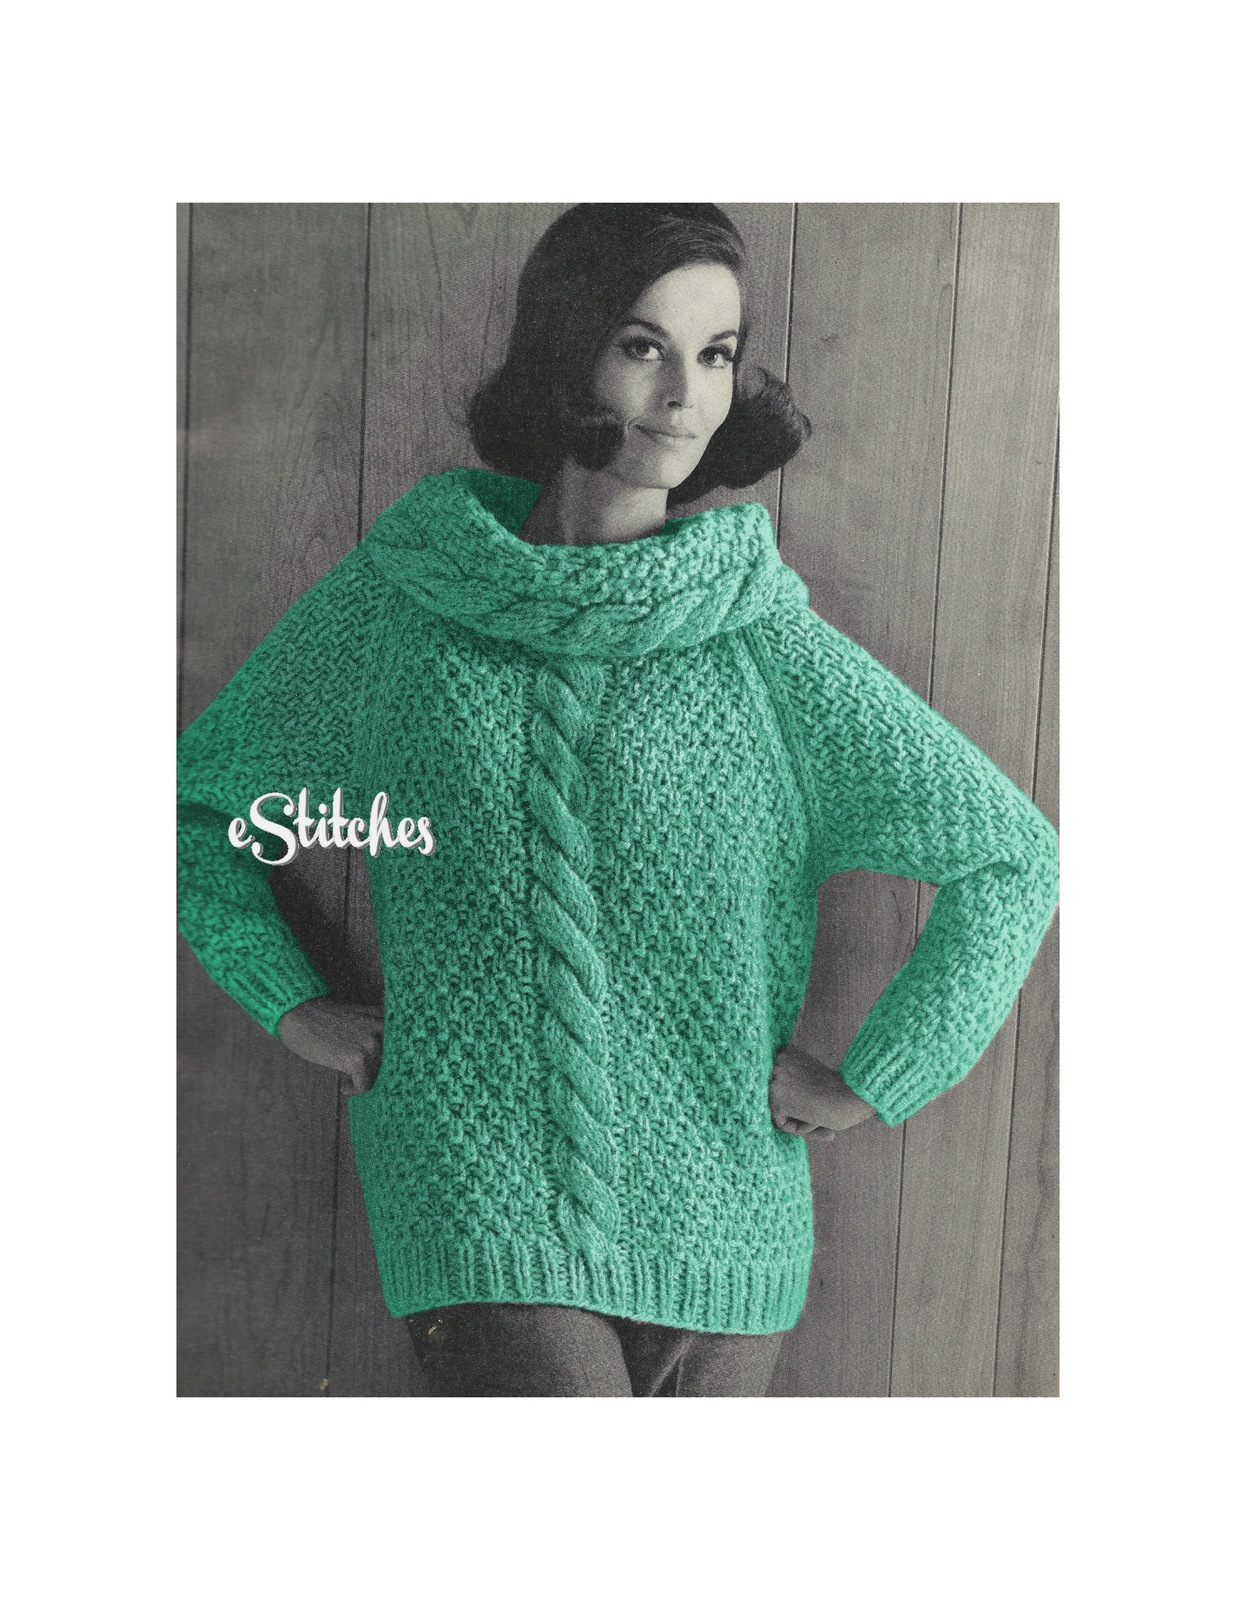 Fleisher Knit Pattern (1960s): 5 listings